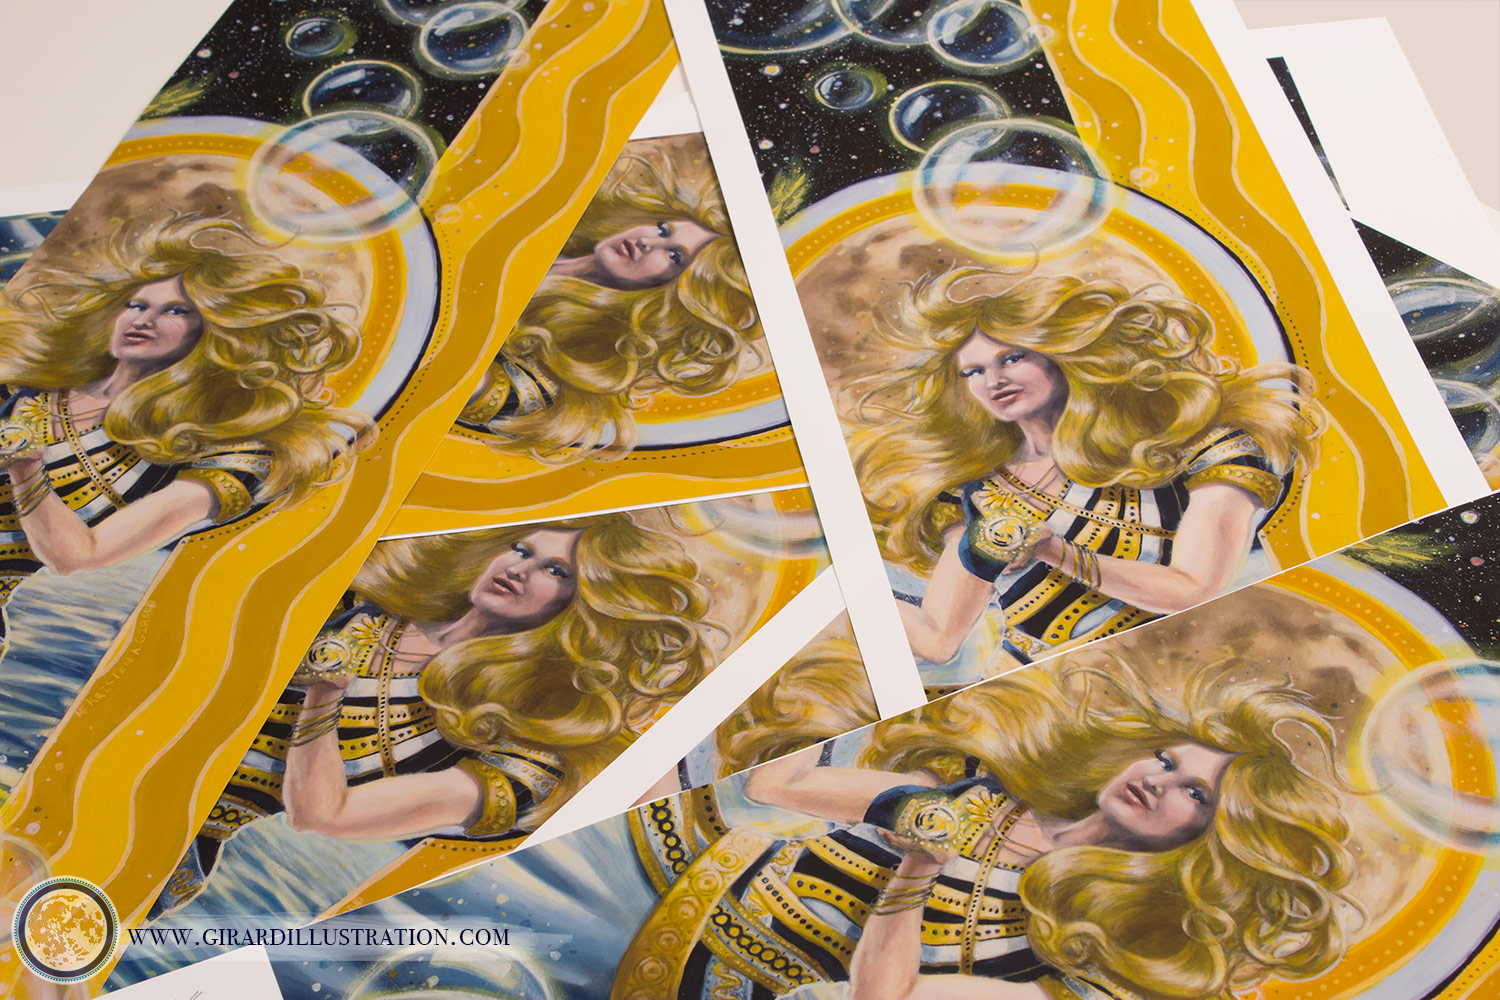 Air Magic  © by Kristen Girard. A behind the scenes look at test strips printed for the  Air Magic limited edition prints . Test strips are printed samples used for quality control to ensure that the final print is as close to the original artwork as possible.